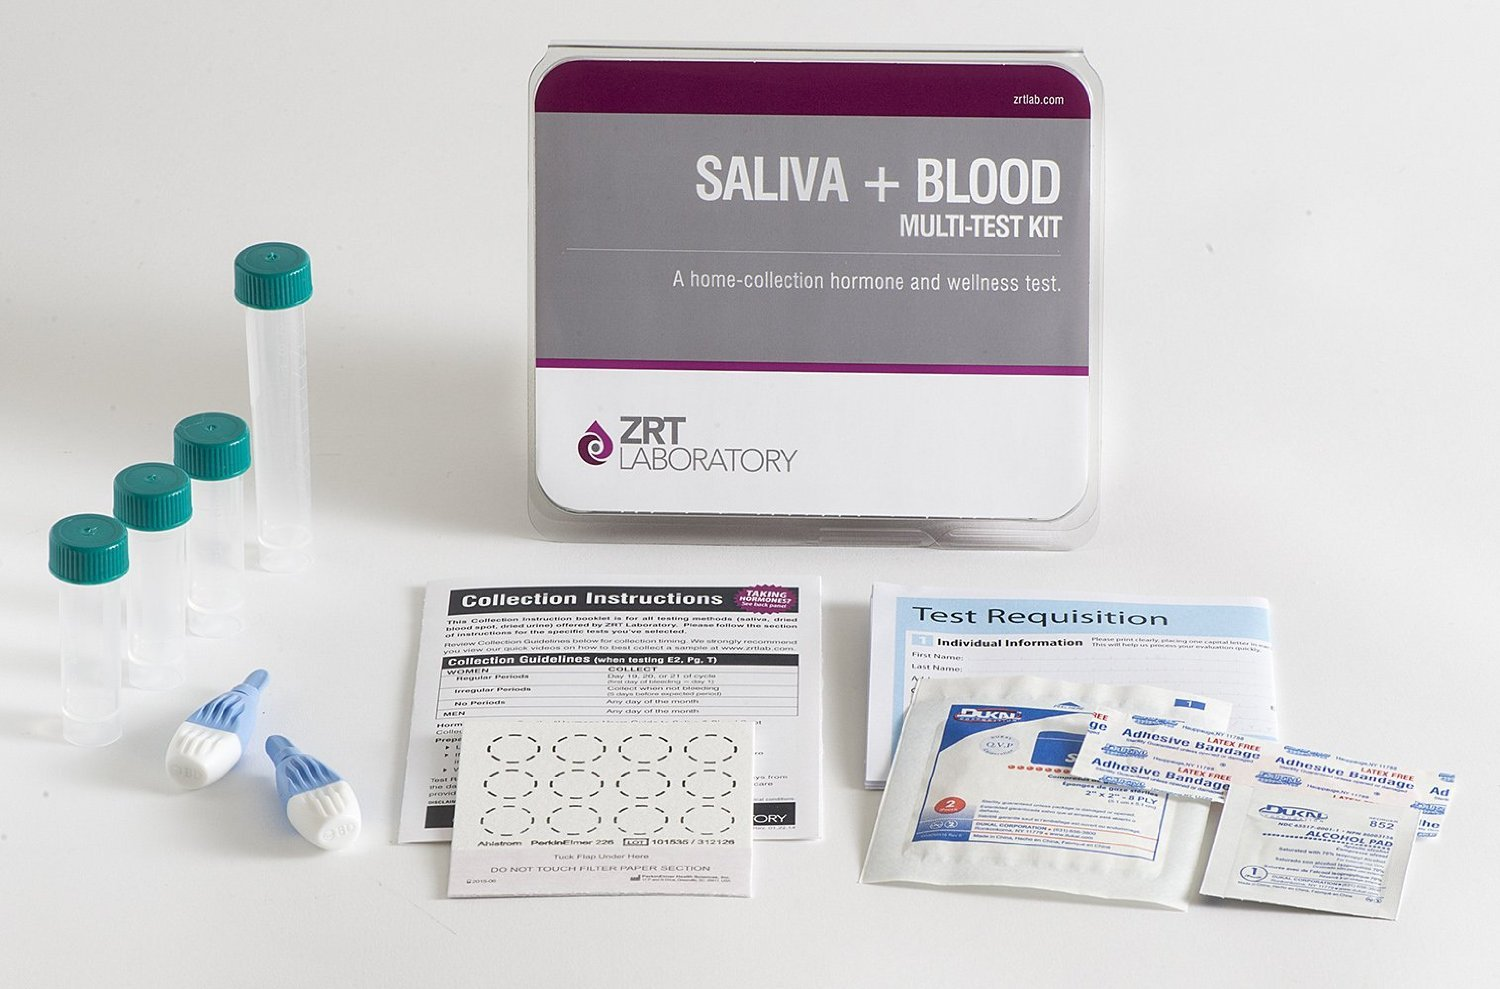 12 Hormone Comprehensive Male Profile I Home Test Kit (Saliva: E2, T, DS, Cx4; Blood: PSA, TSH, fT3, fT4, TPO) - Includes Pre-Paid Sample Return Label by TestCountry/ZRT Laboratory (Image #1)